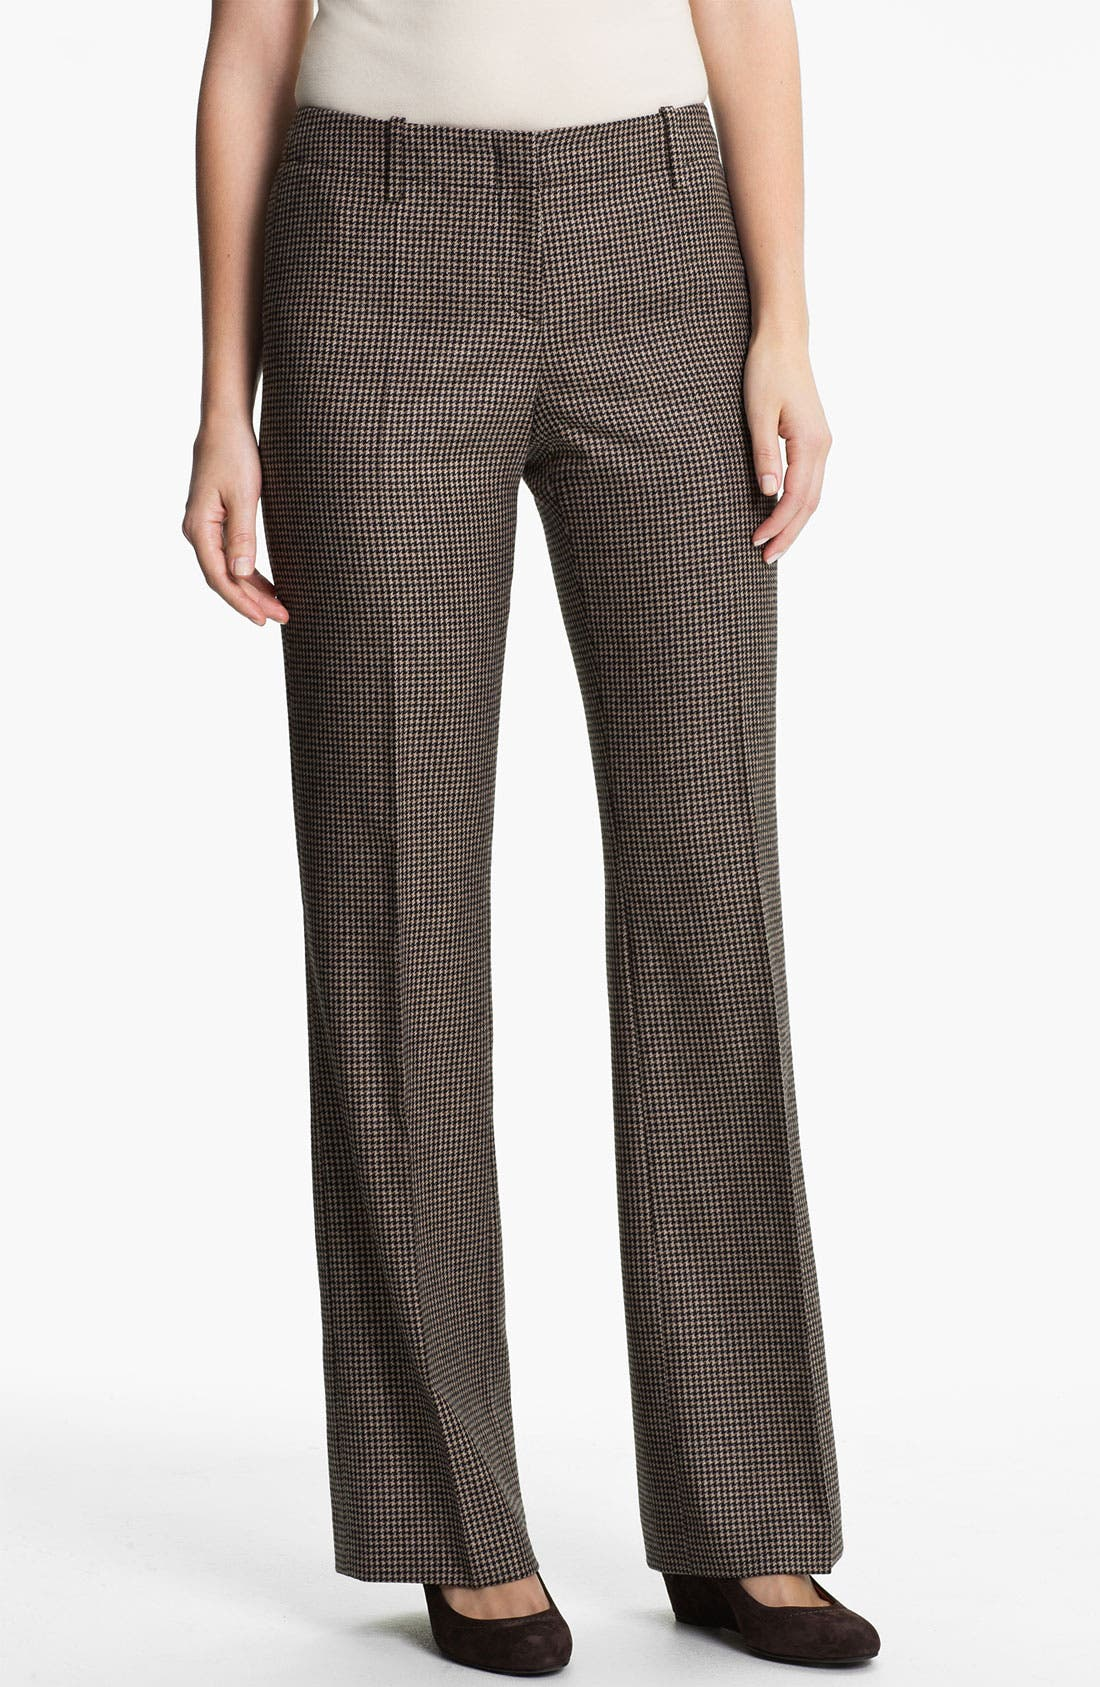 Main Image - BOSS HUGO BOSS 'Tulia4' Check Pattern Trousers